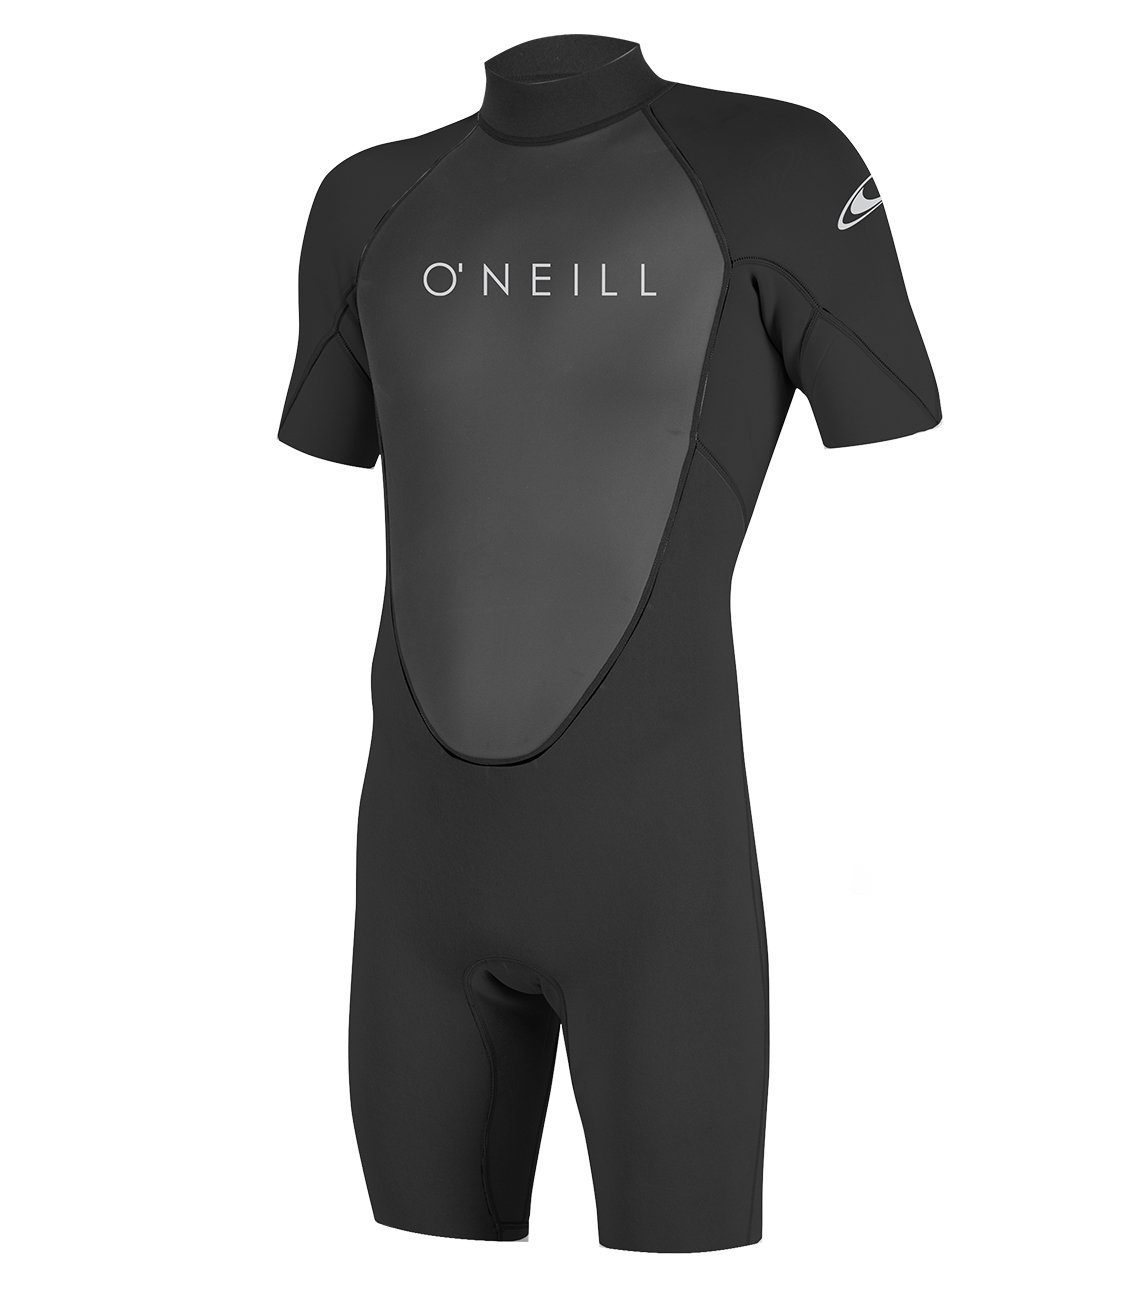 O'Neill Men's Reactor-2 2mm Back Zip Short Sleeve Spring Wetsuit, Black, Large Tall by O'Neill Wetsuits